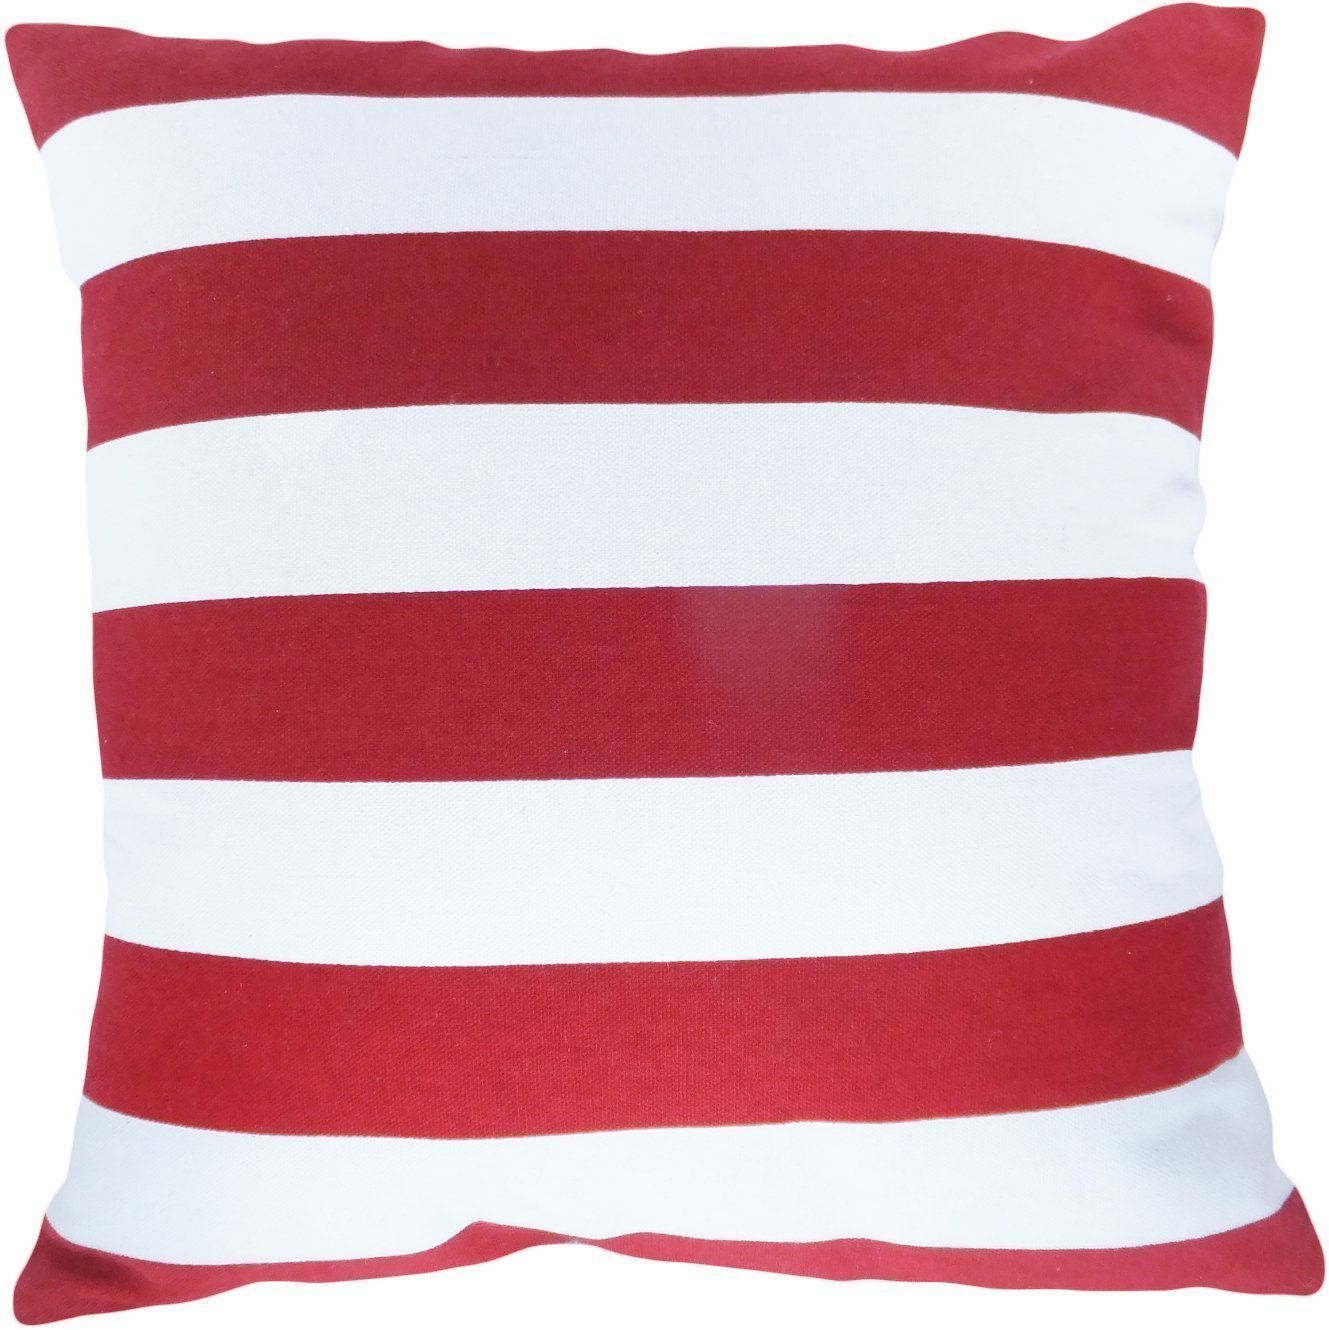 amazoncom decorative printed stripes throw pillow cover  red  - amazoncom decorative printed stripes throw pillow cover  red home kitchen